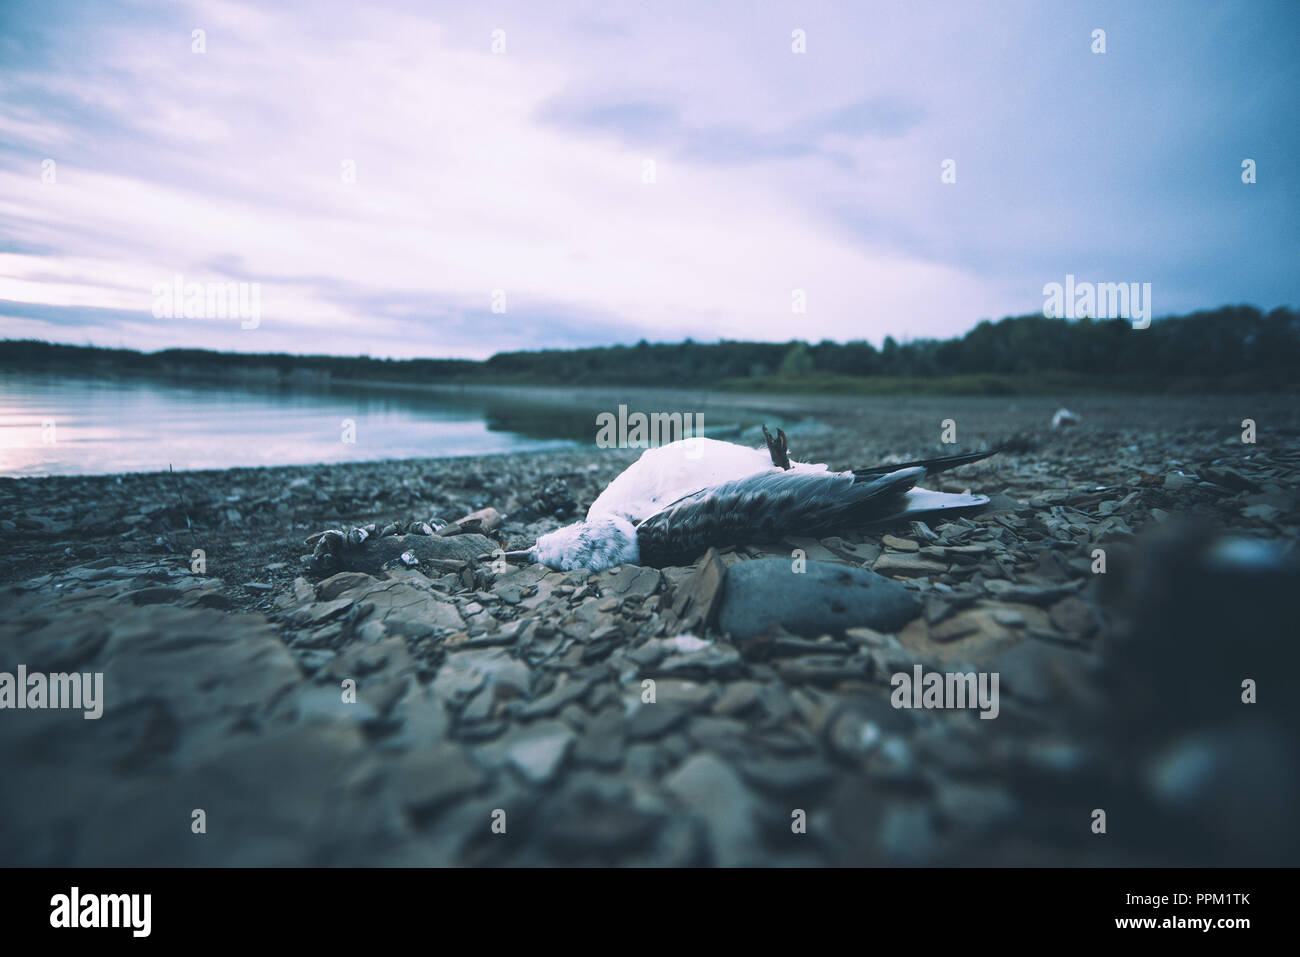 Dead bird on the shore of the lake because of the dirty water. - Stock Image